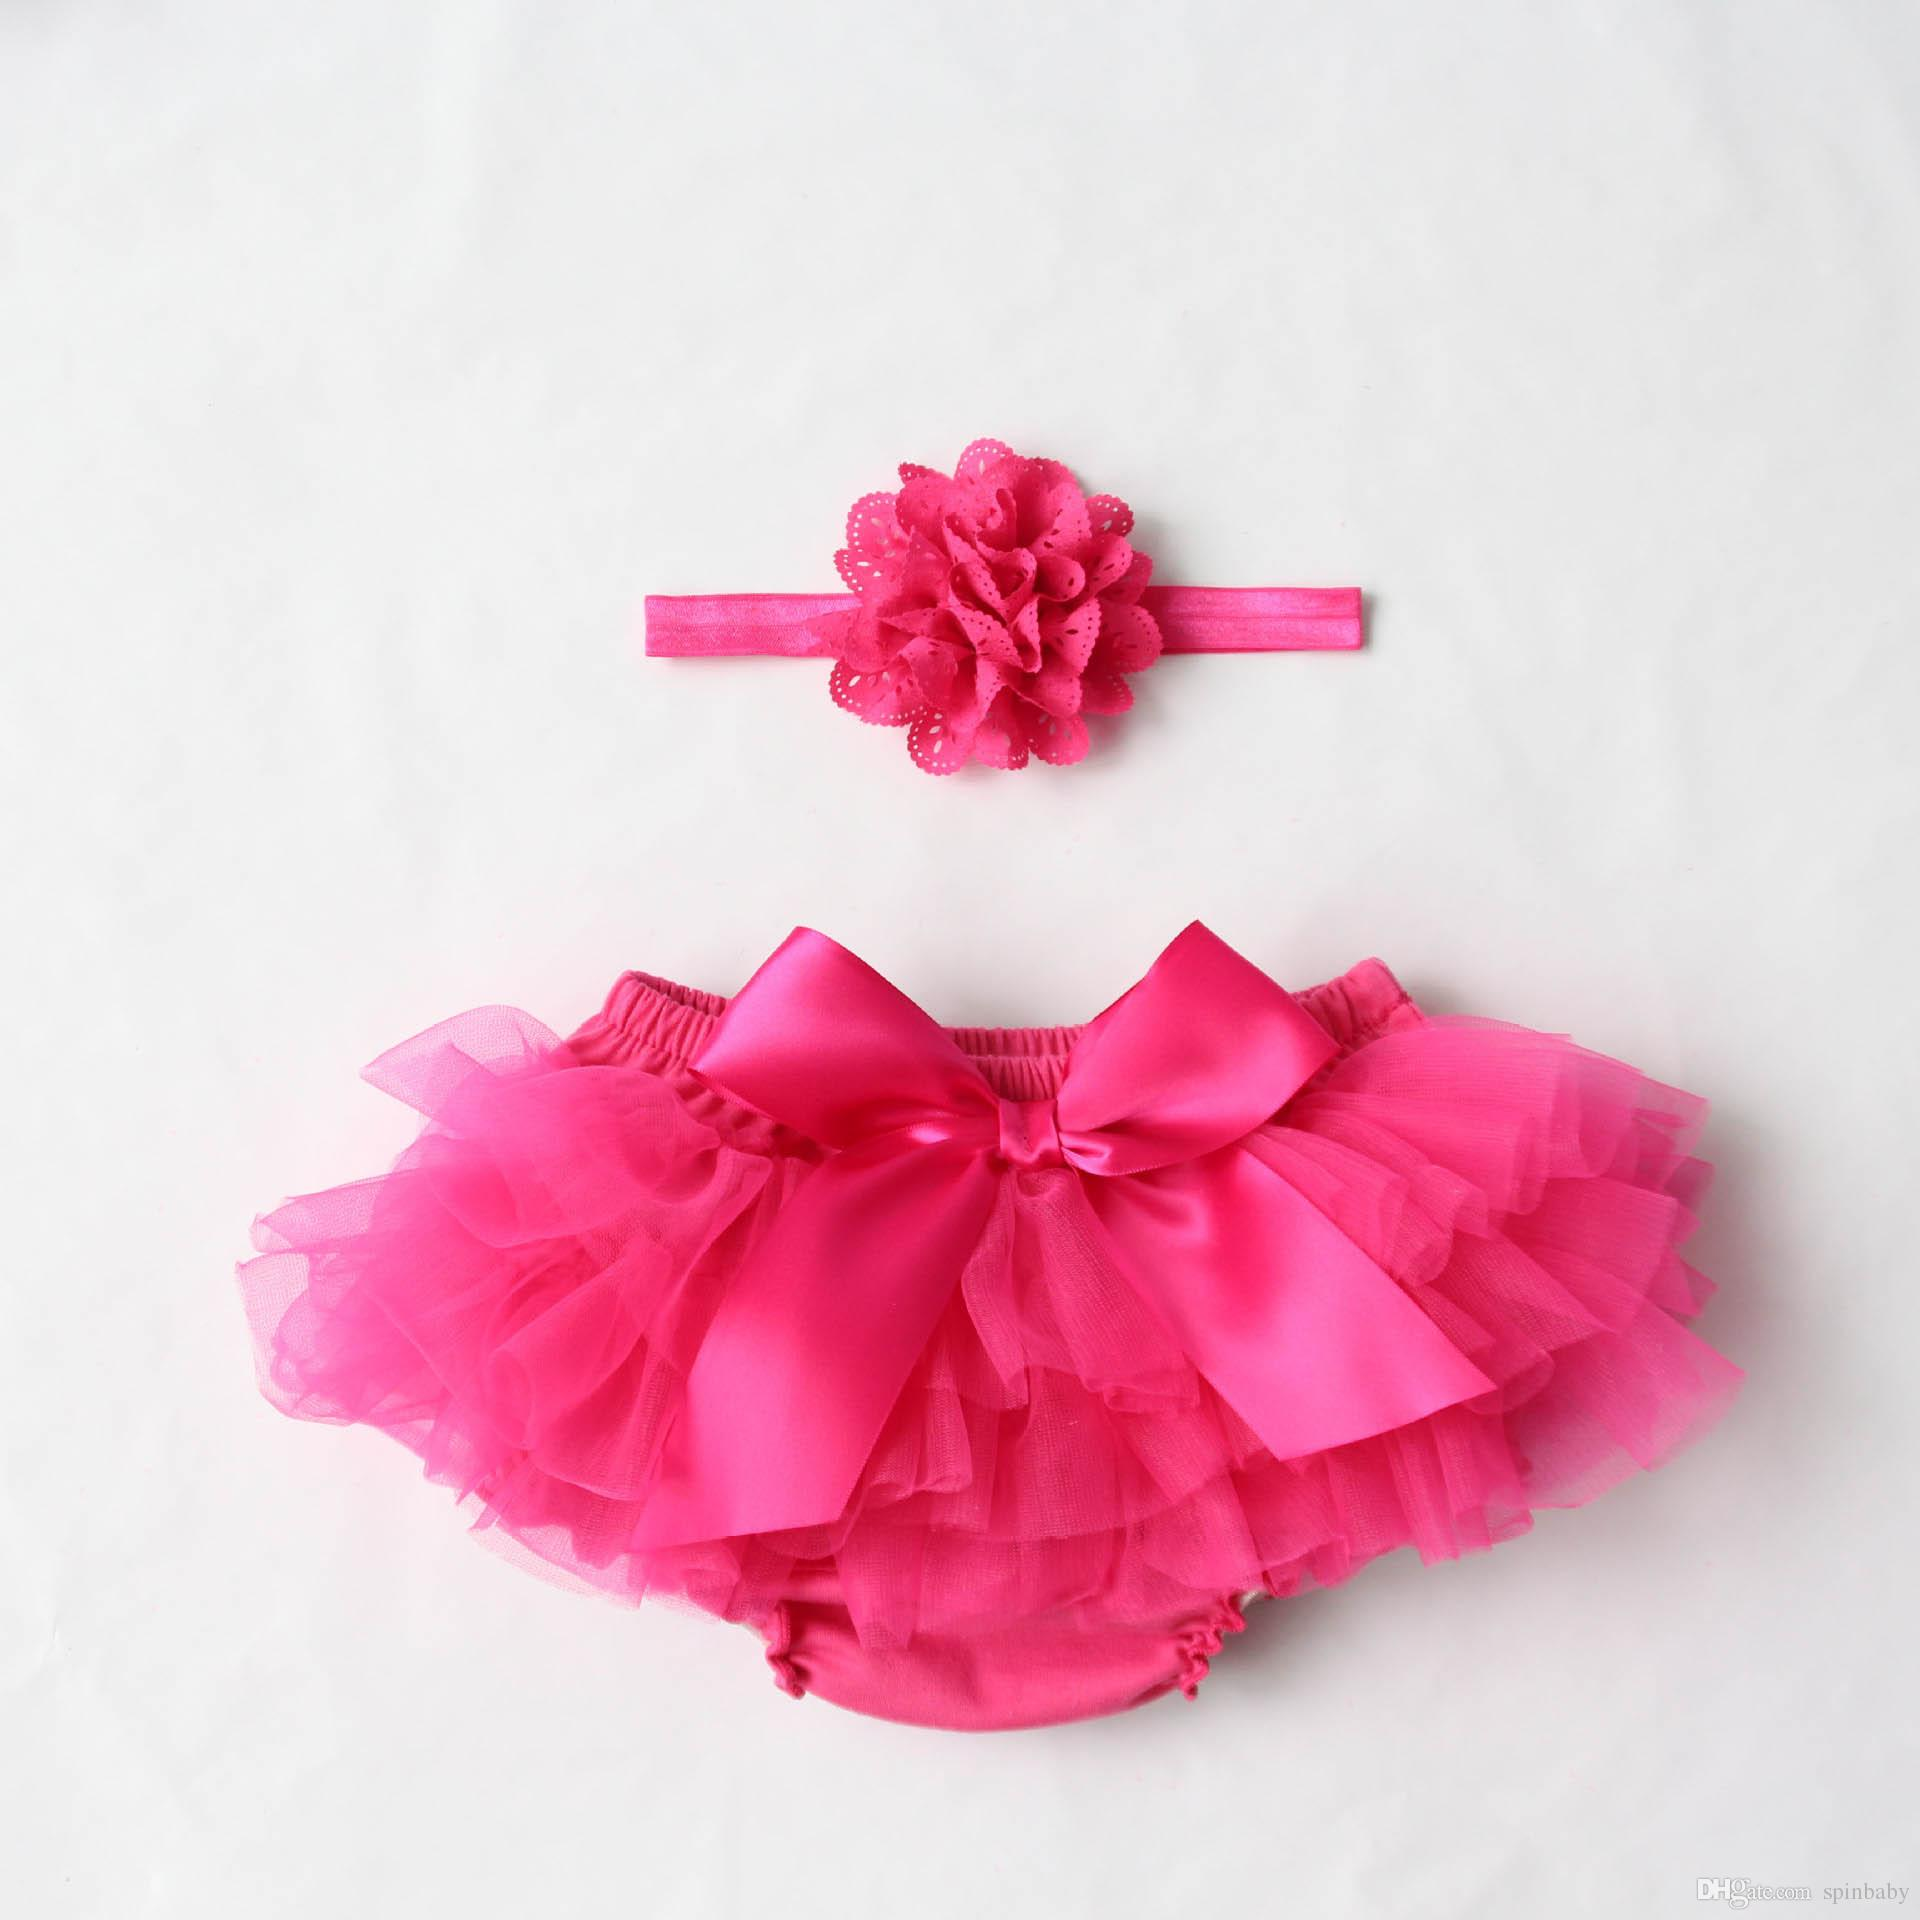 Summer baby bloomers girls Ruffle shorts and tops set kids pp pants + flower headbands boutique outfits toddler lace underwear diaper covers